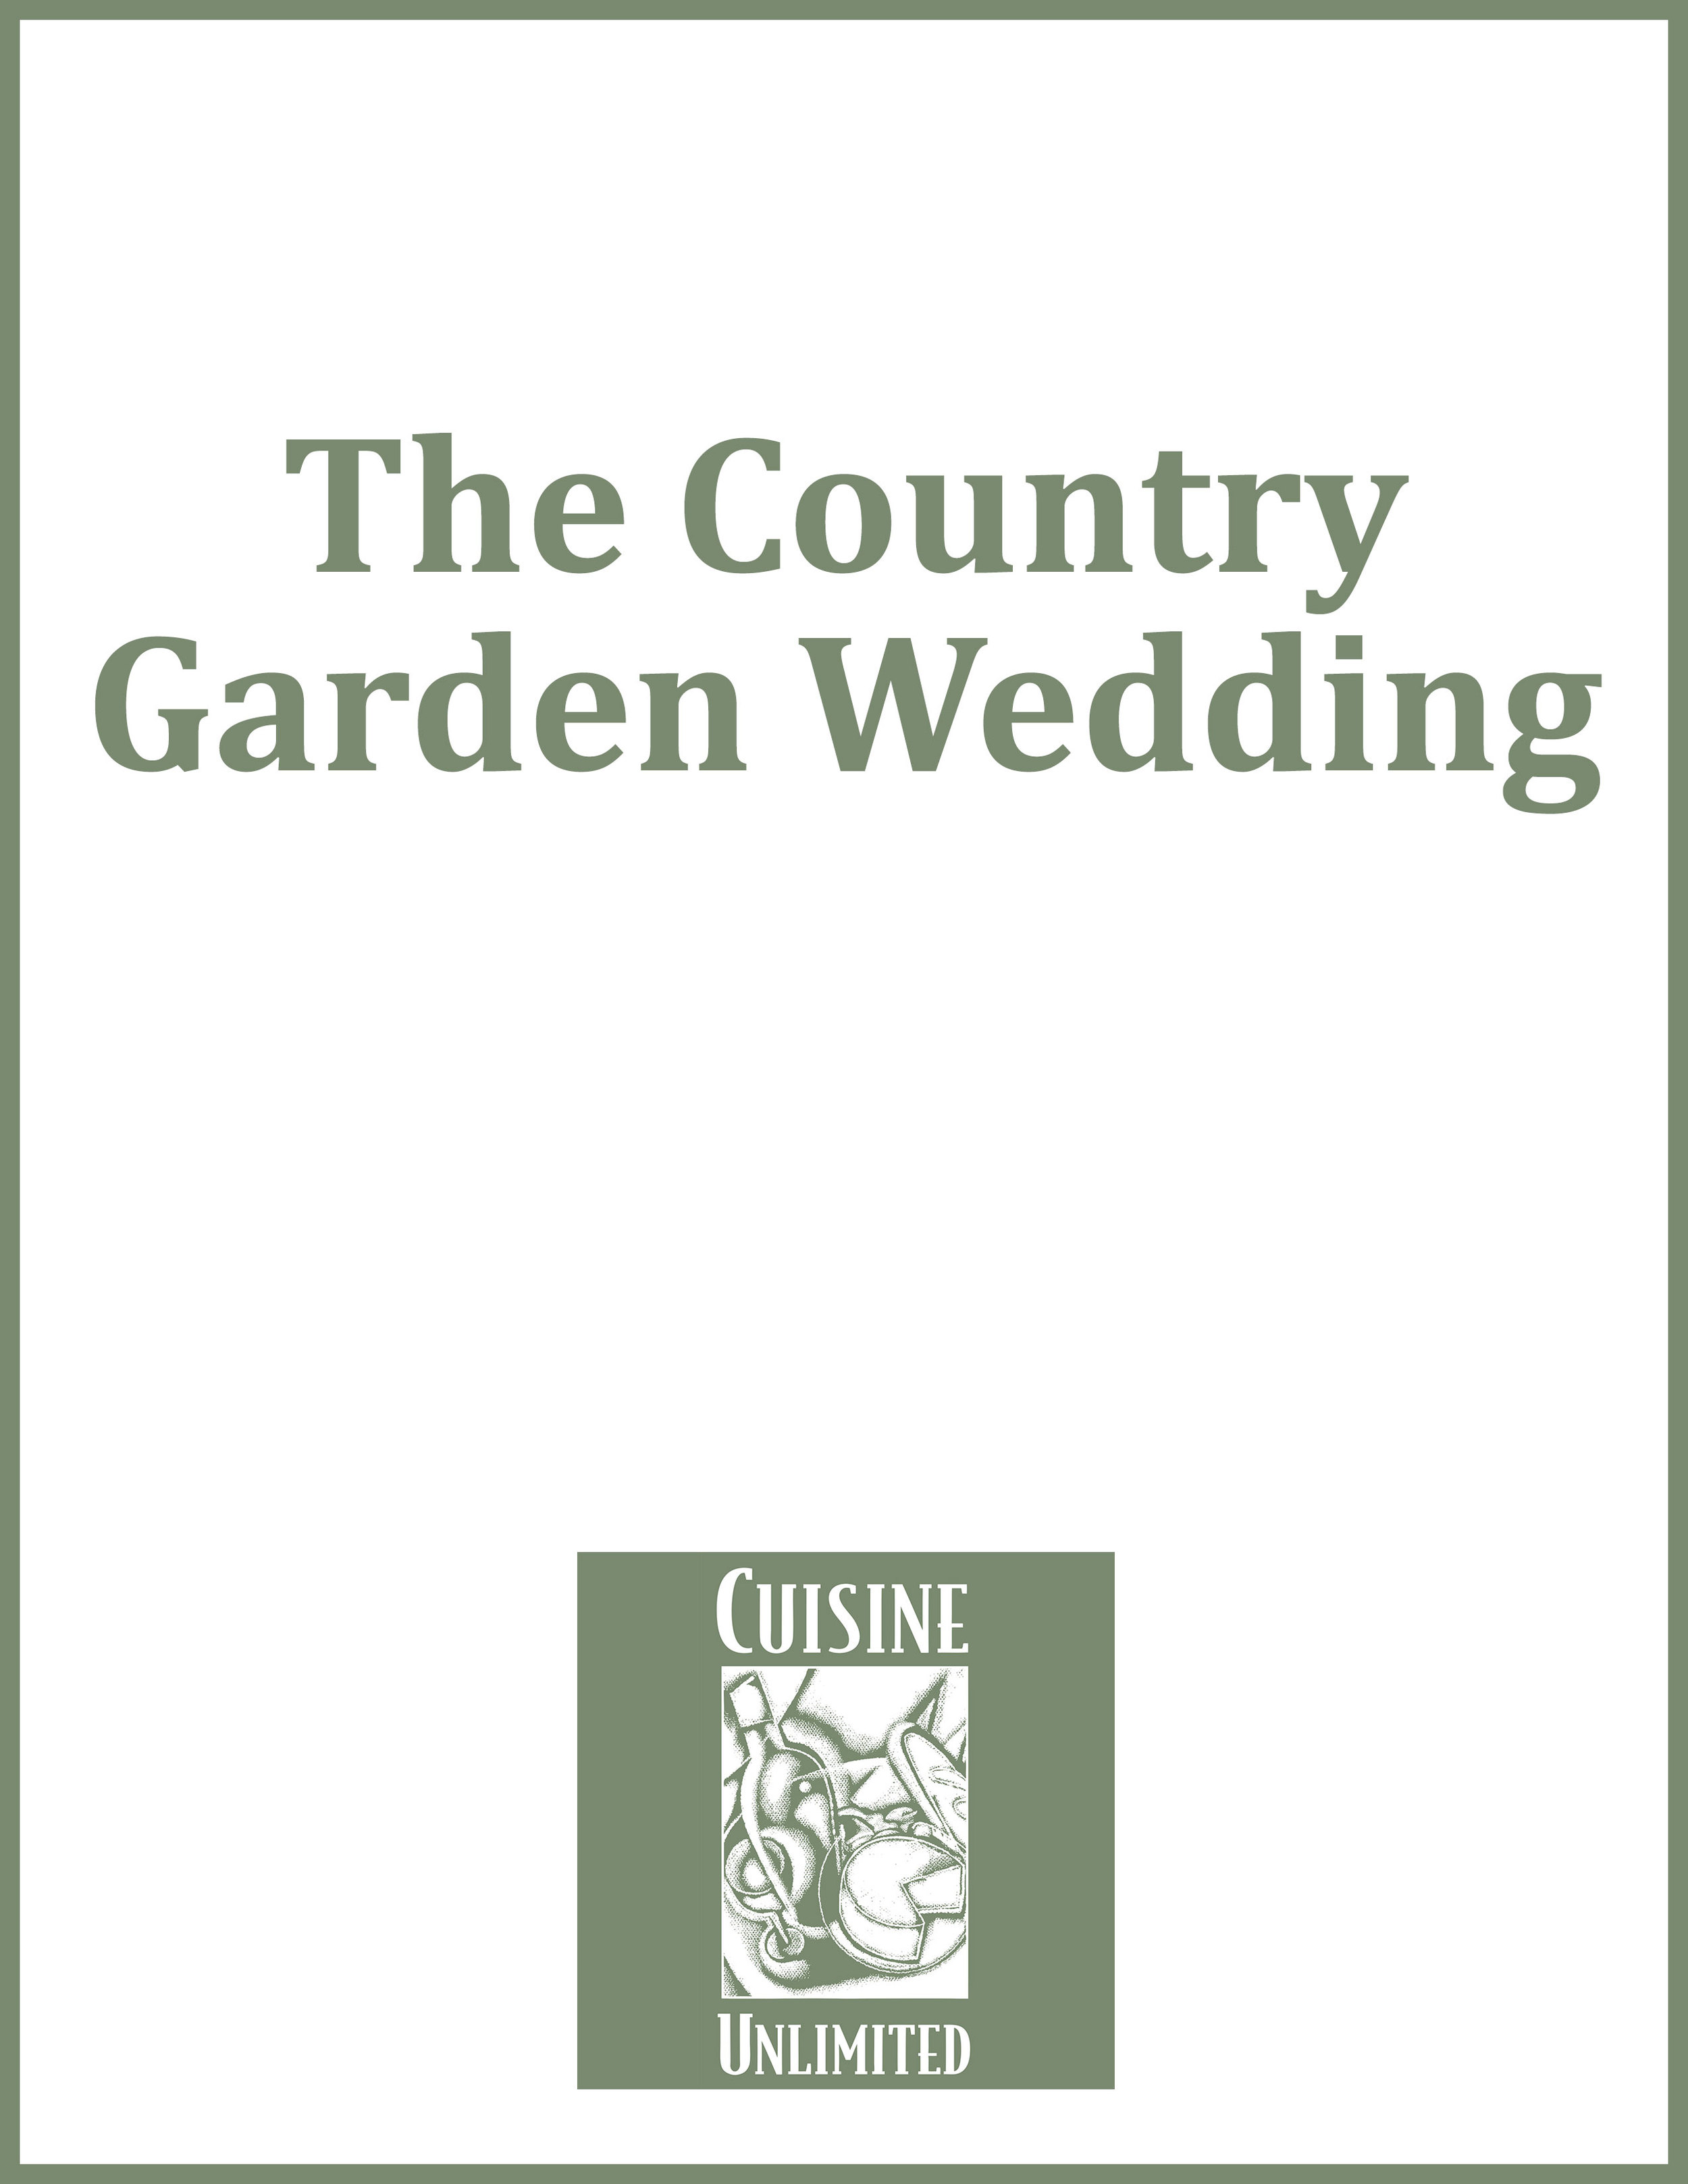 The Country Garden Wedding